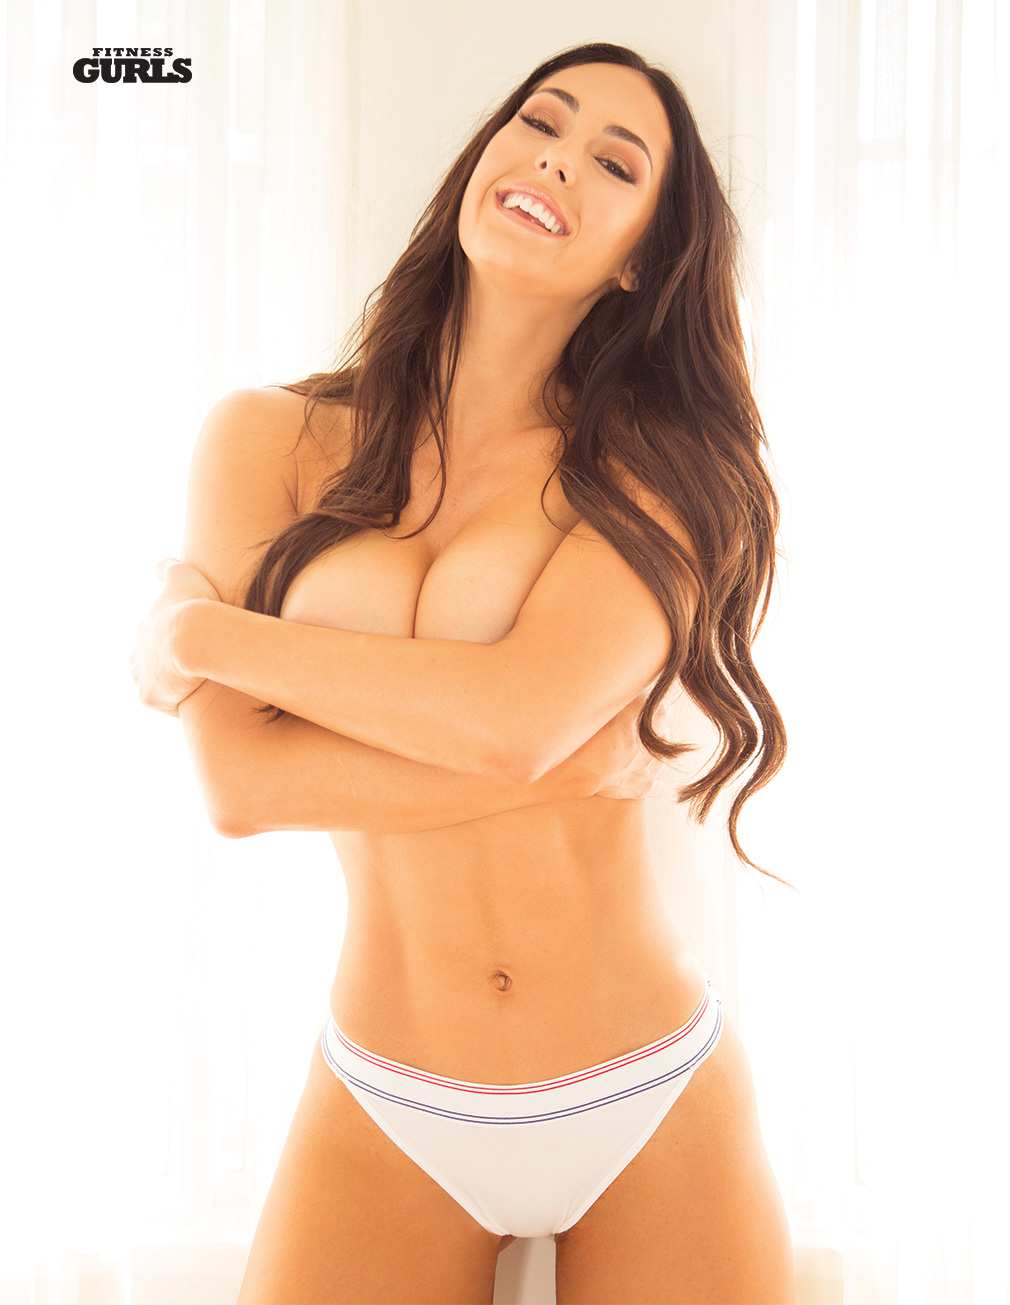 Hope beel topless